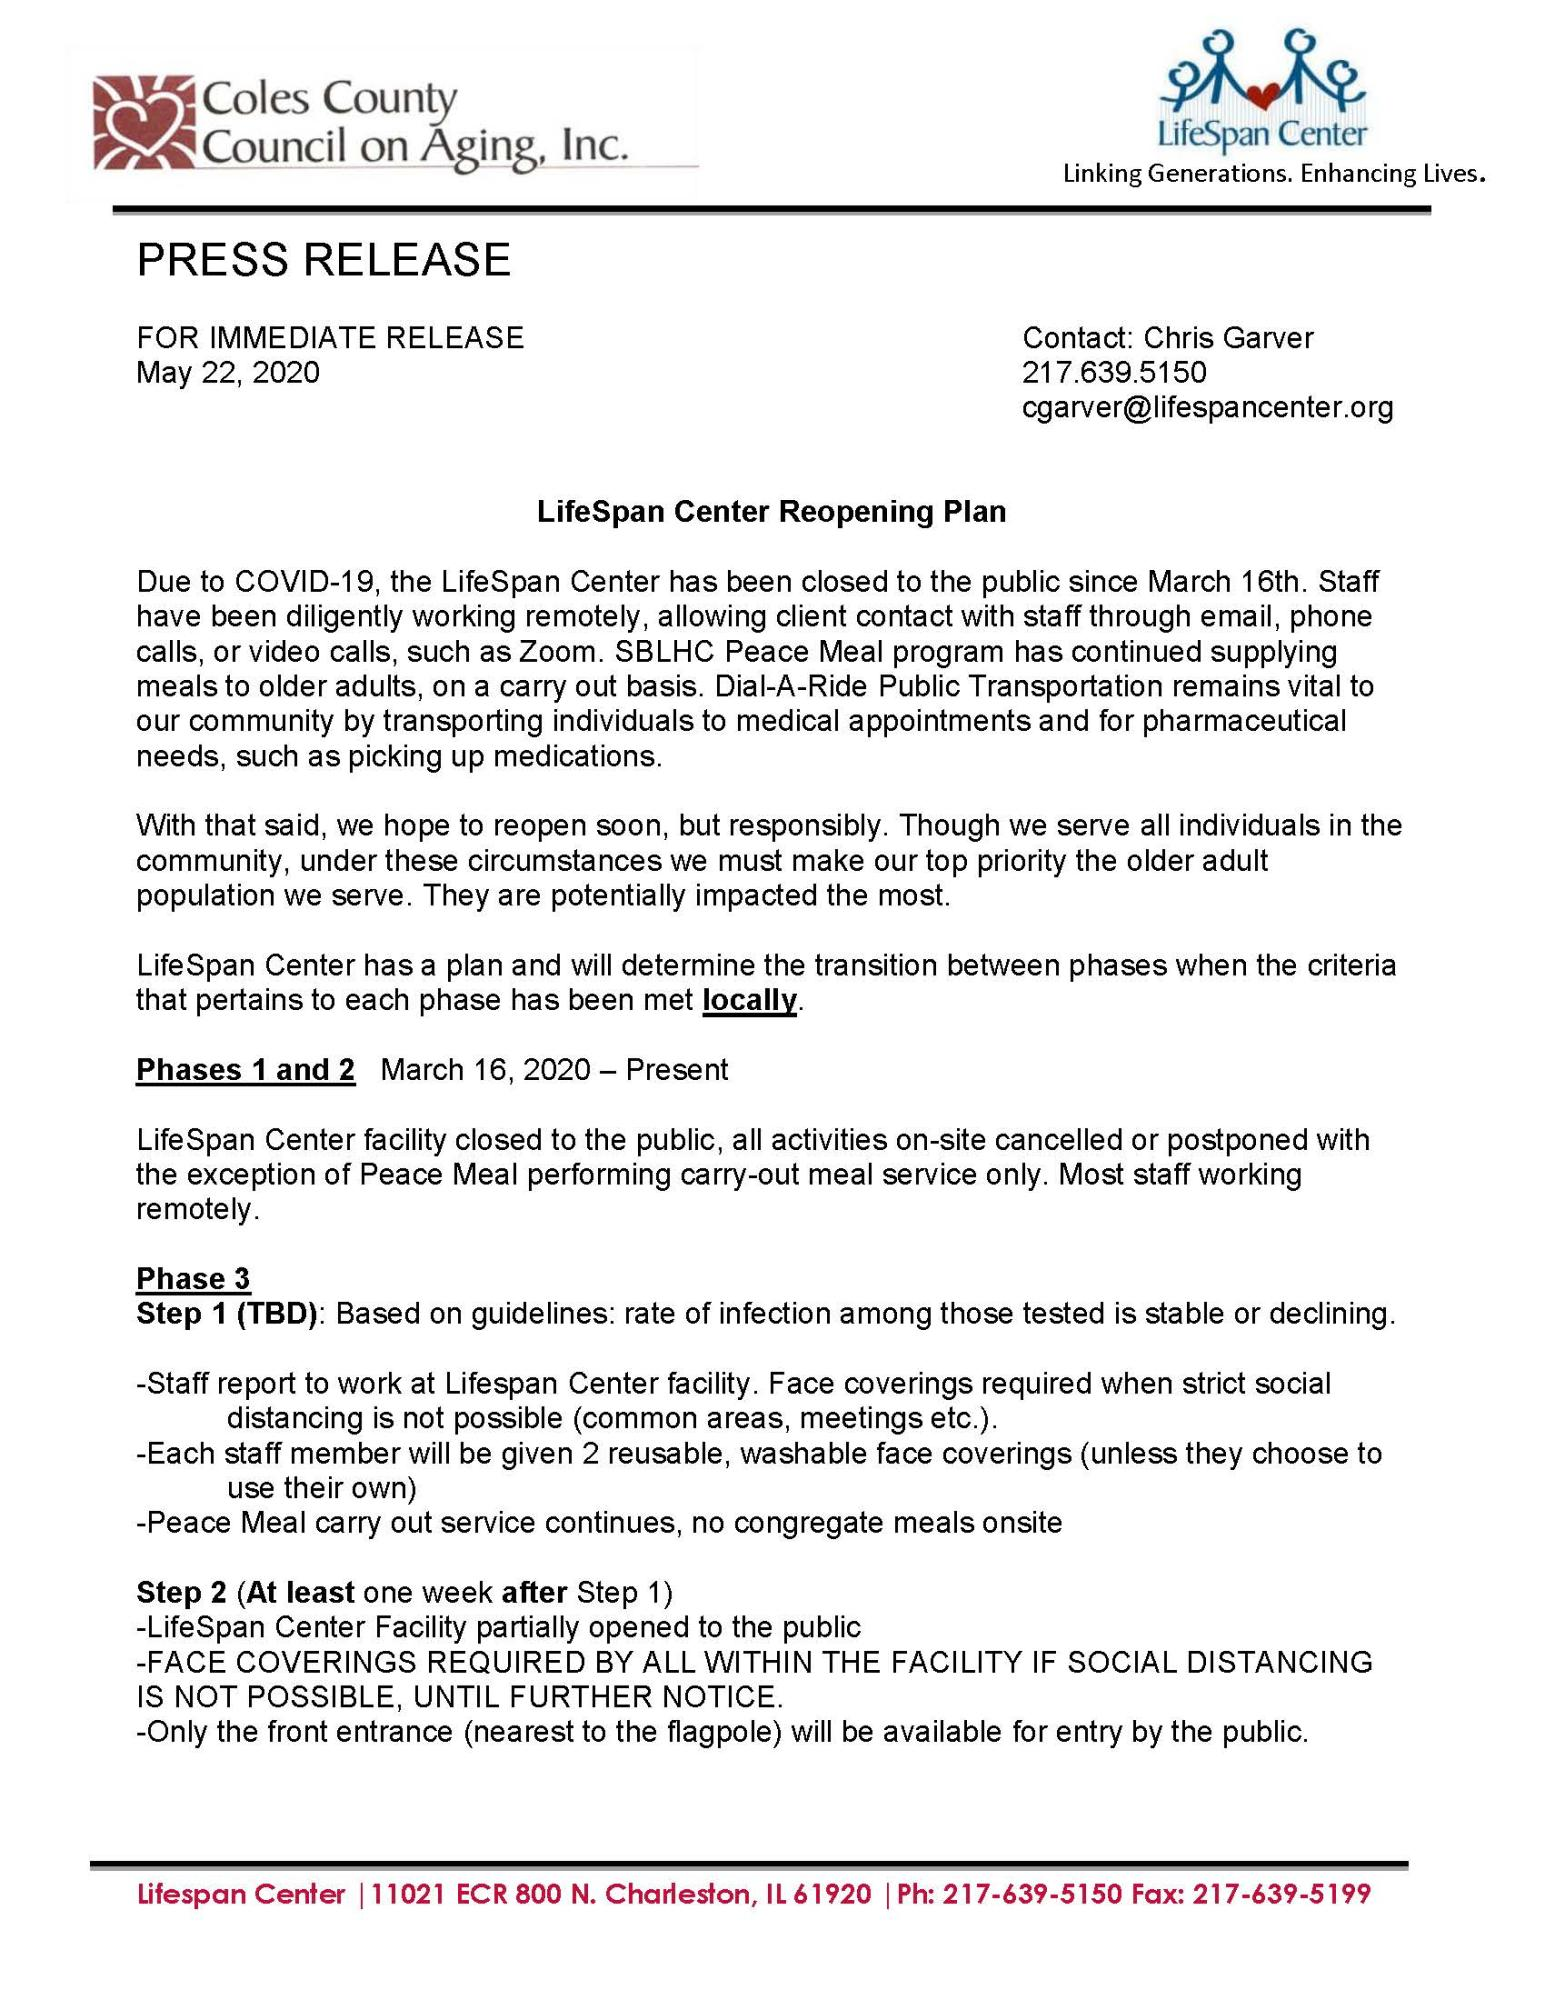 Press_Release_-_LifeSpan_Center_Reopening_Plan__1__Page_1.jpg